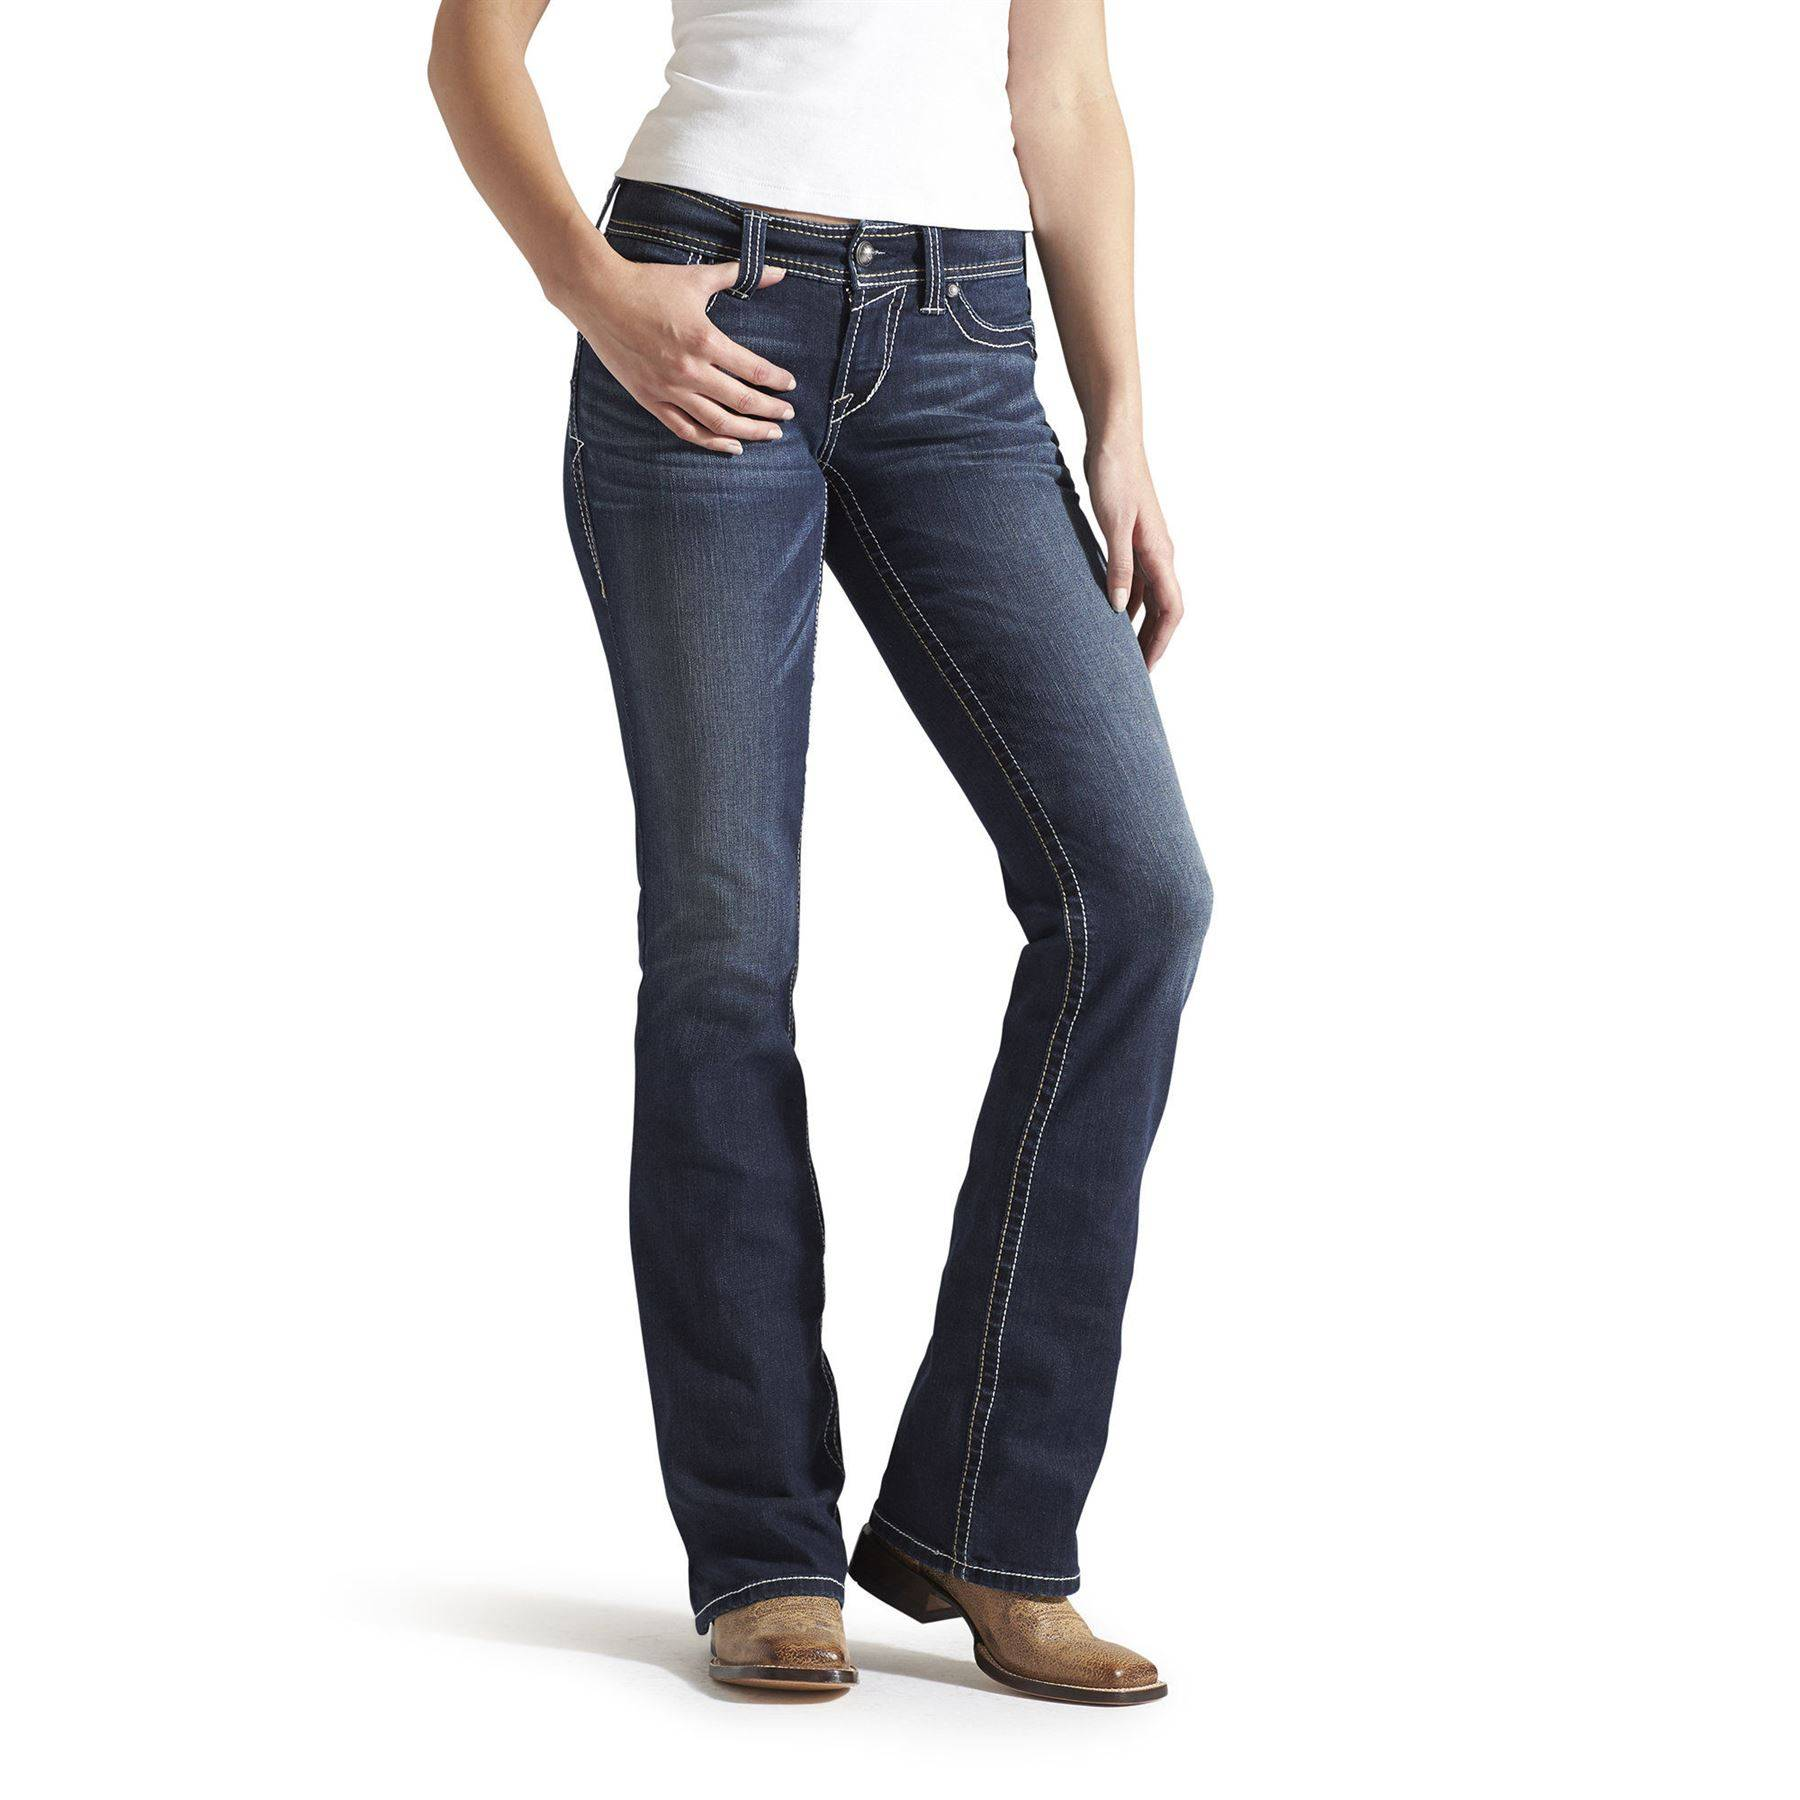 Ariat Ladies Whipstitch Real Riding Jeans - Ocean